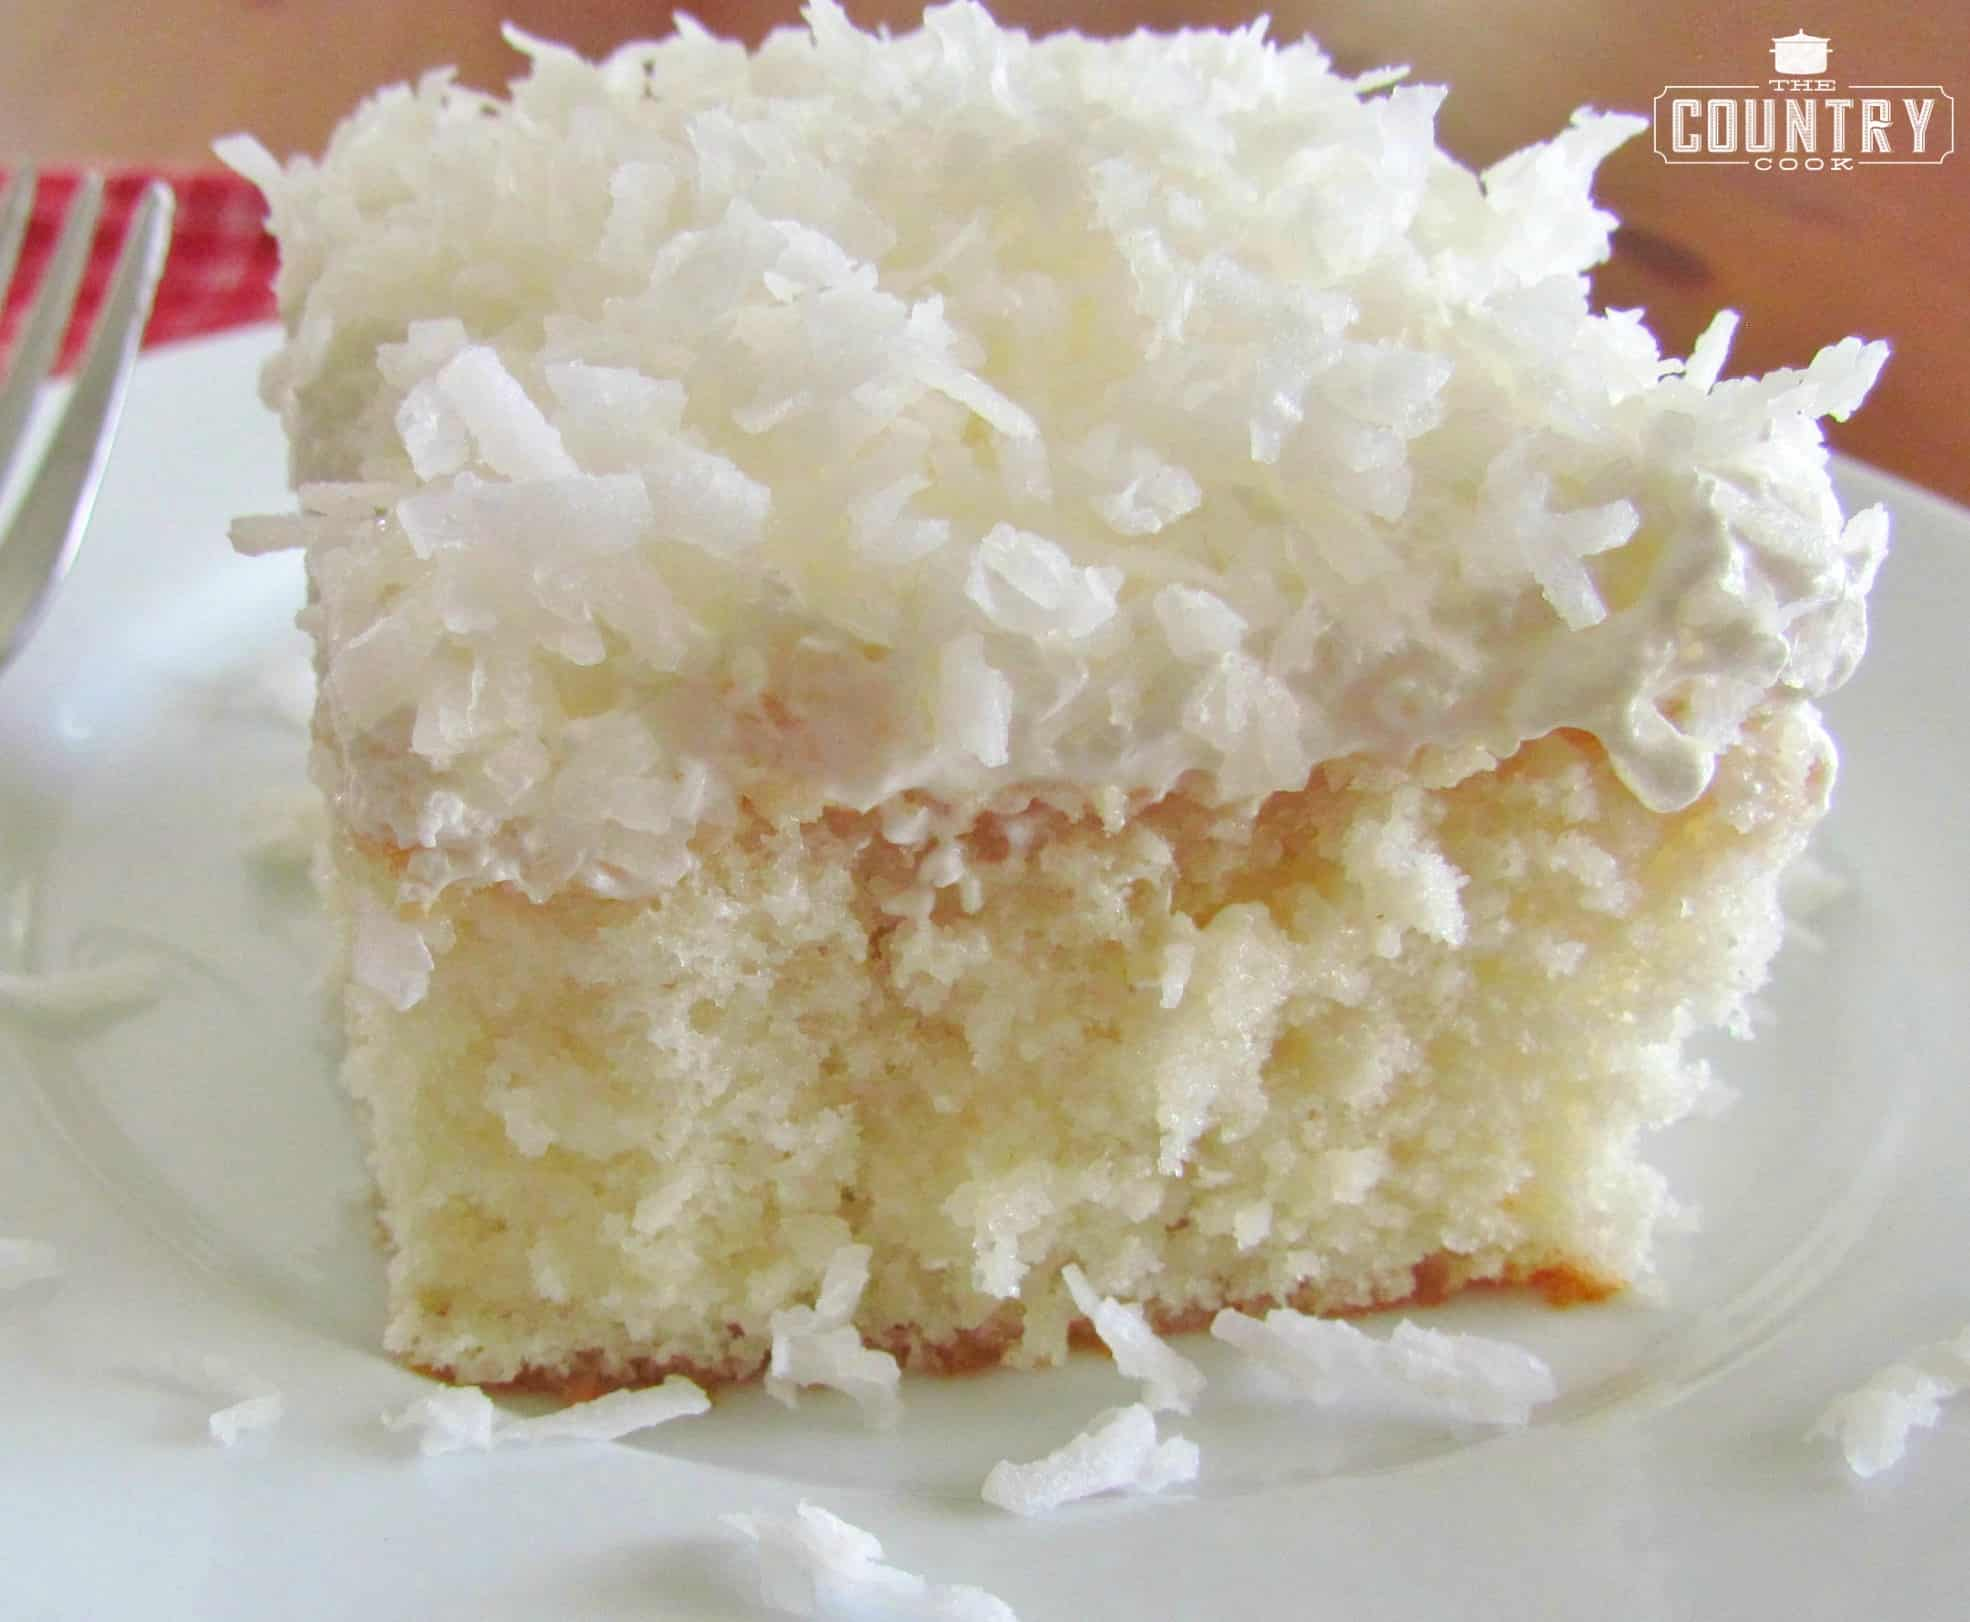 Best Icing For A Coconut Cake